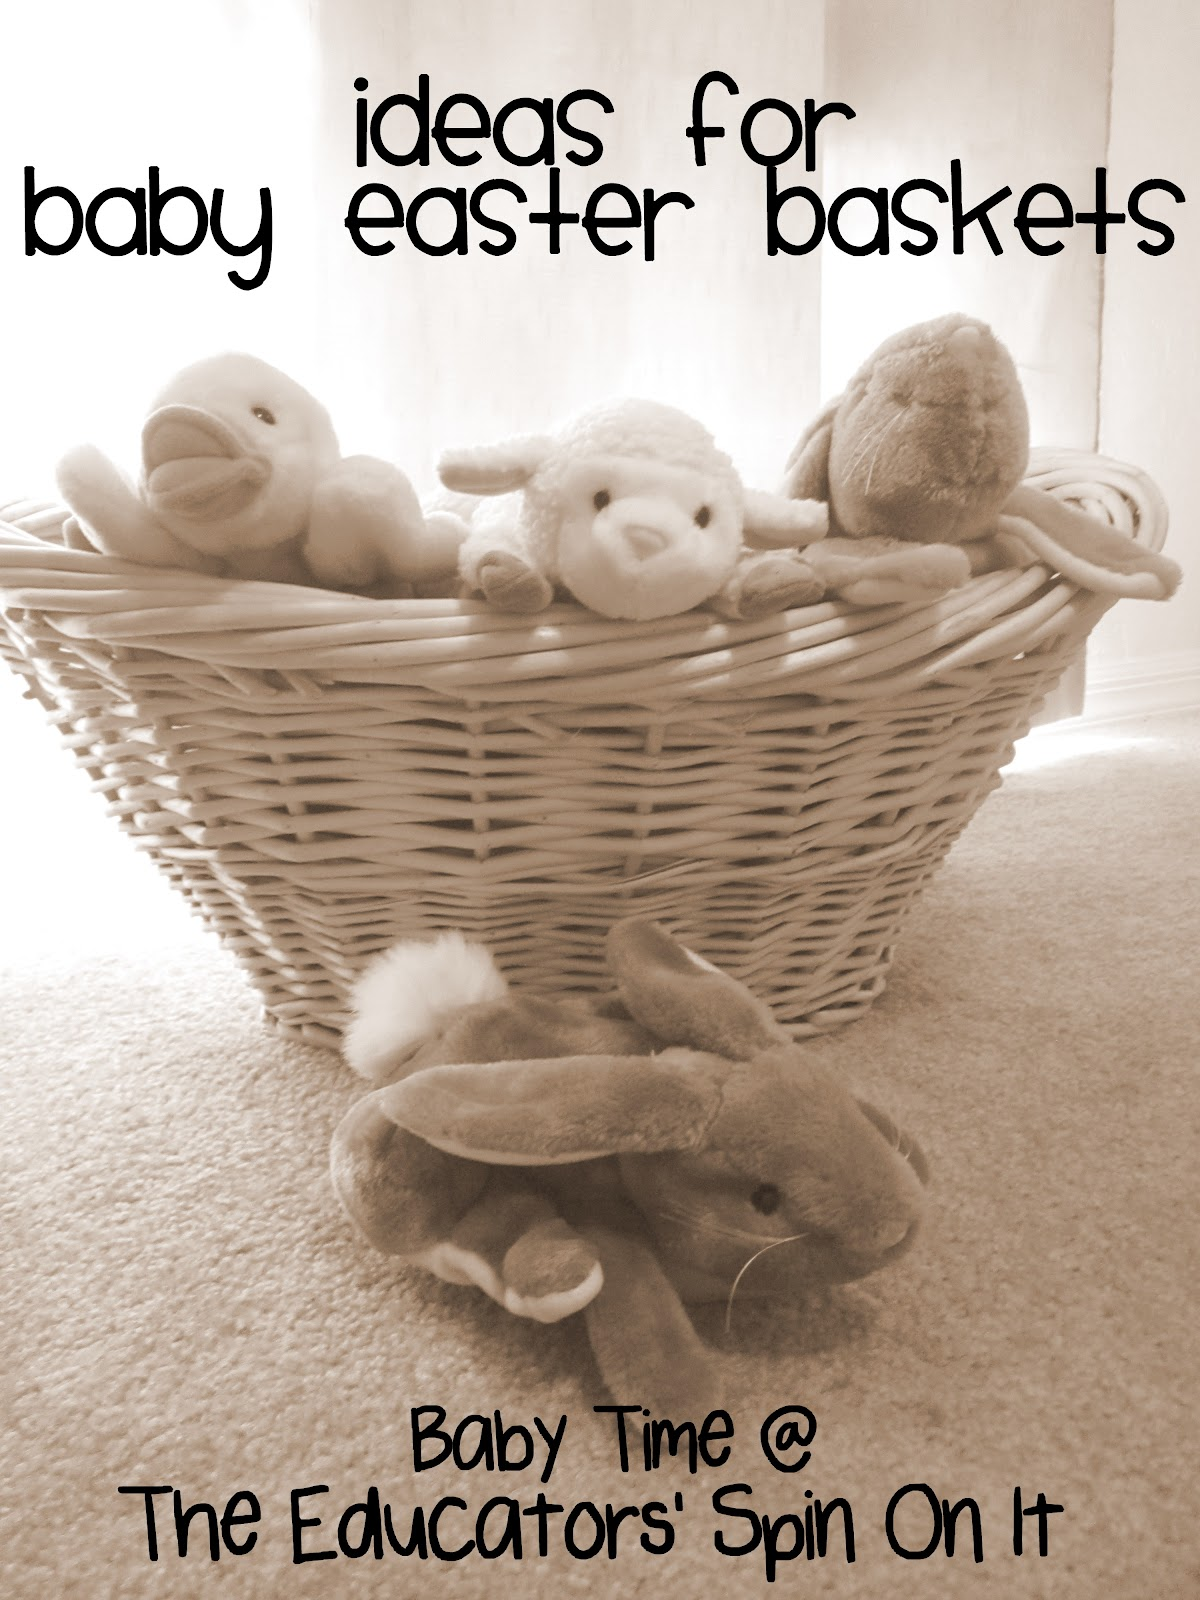 Ideas for easter baskets for babies ideas for easter baskets for babies and toddlers from the educators spin on it negle Image collections